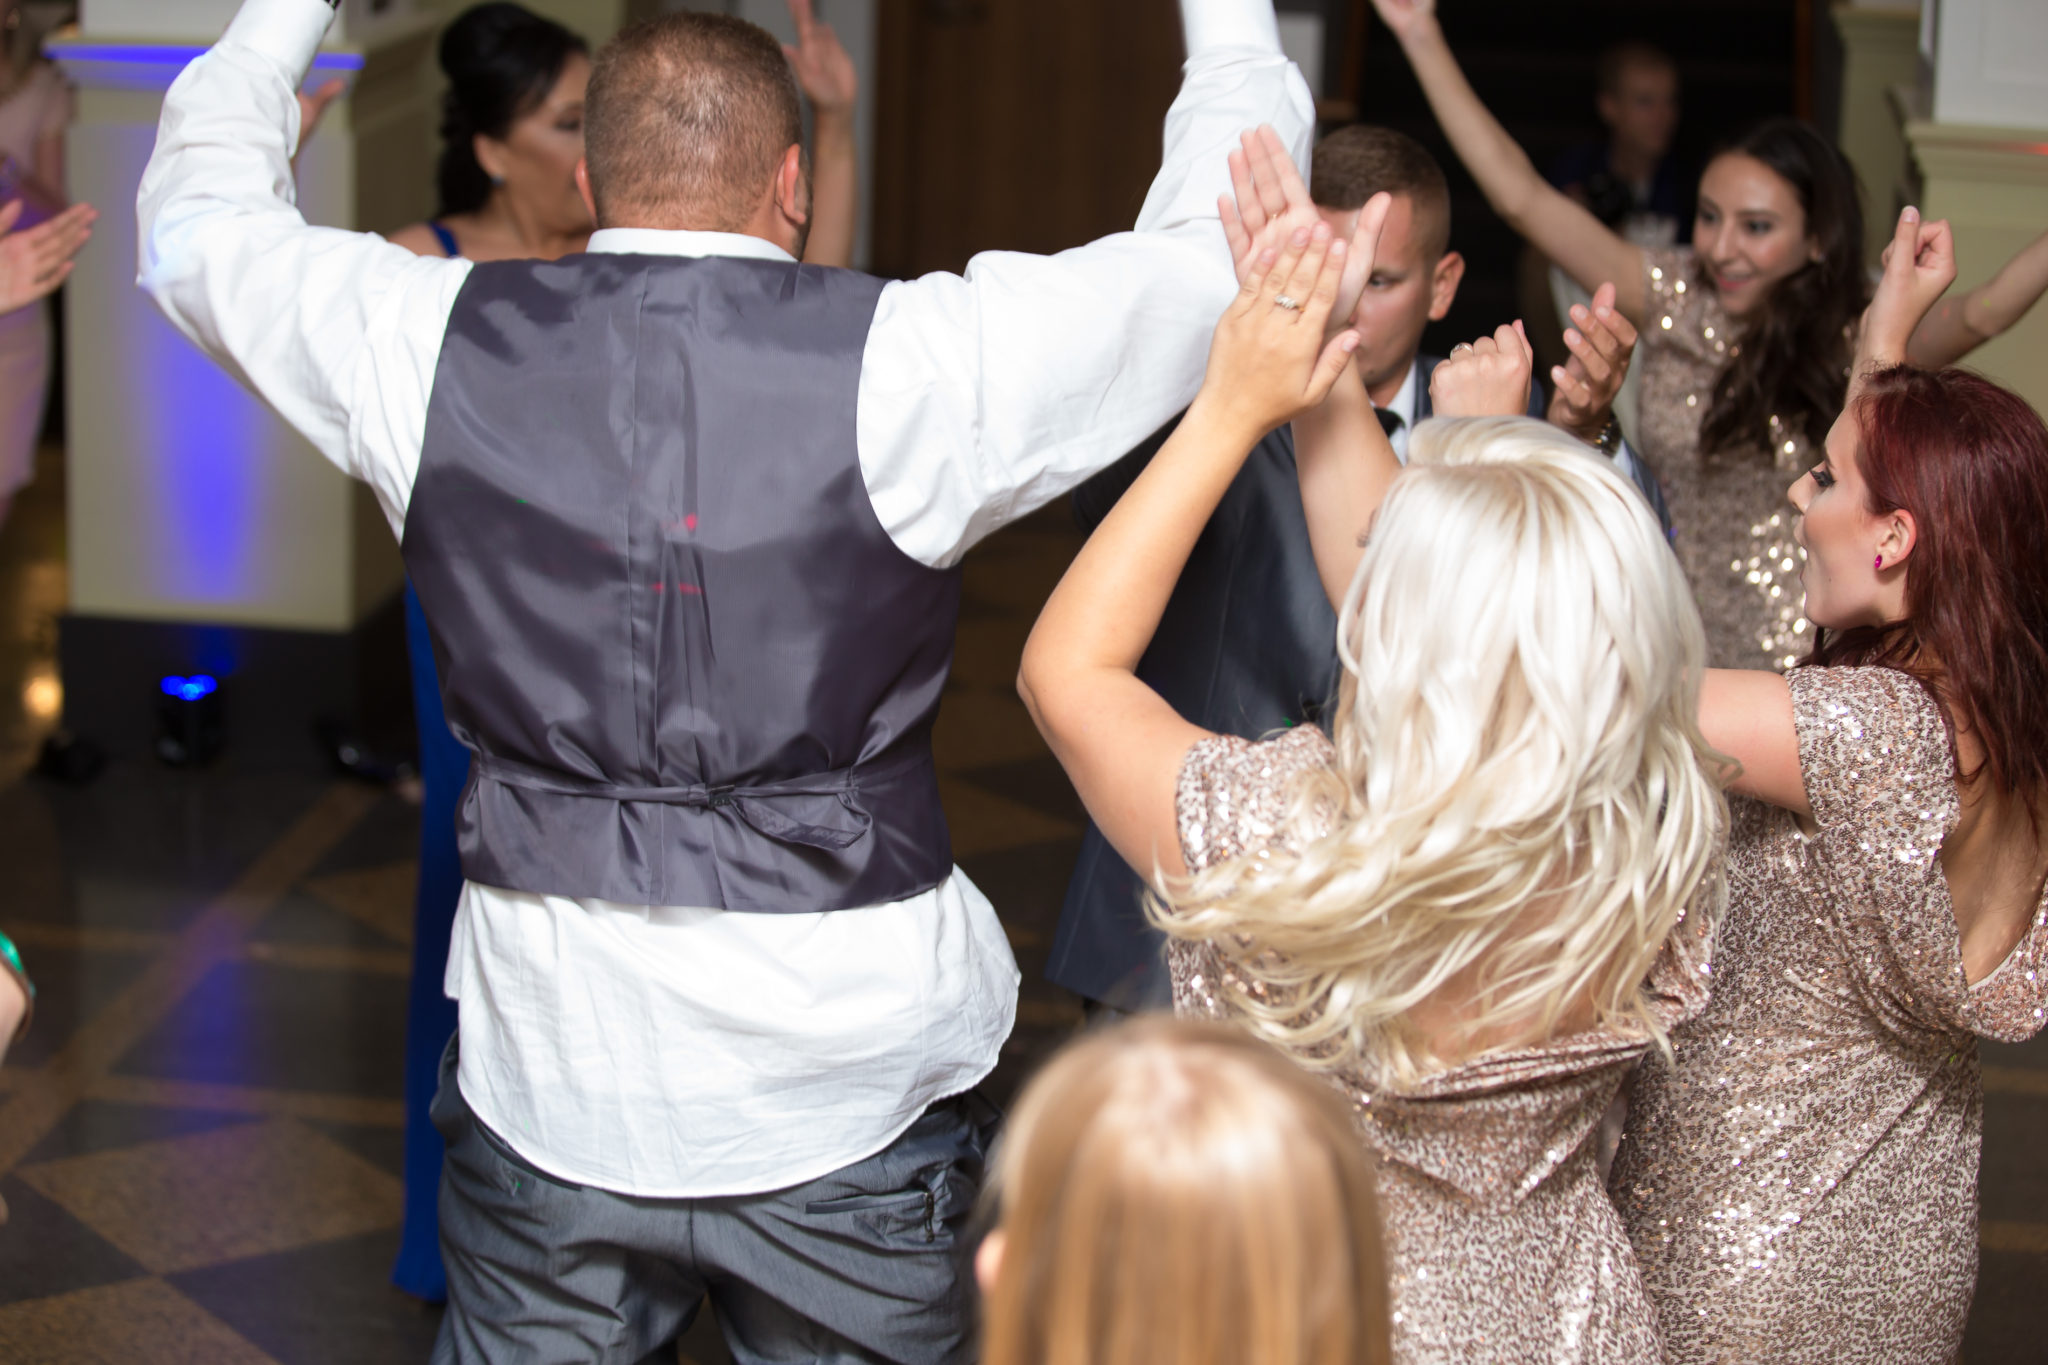 Aleshchenko Dancing 87 GLAM MONTE CRISTO BALLROOM WEDDING | EVERETT WEDDING PHOTOGRAPHER